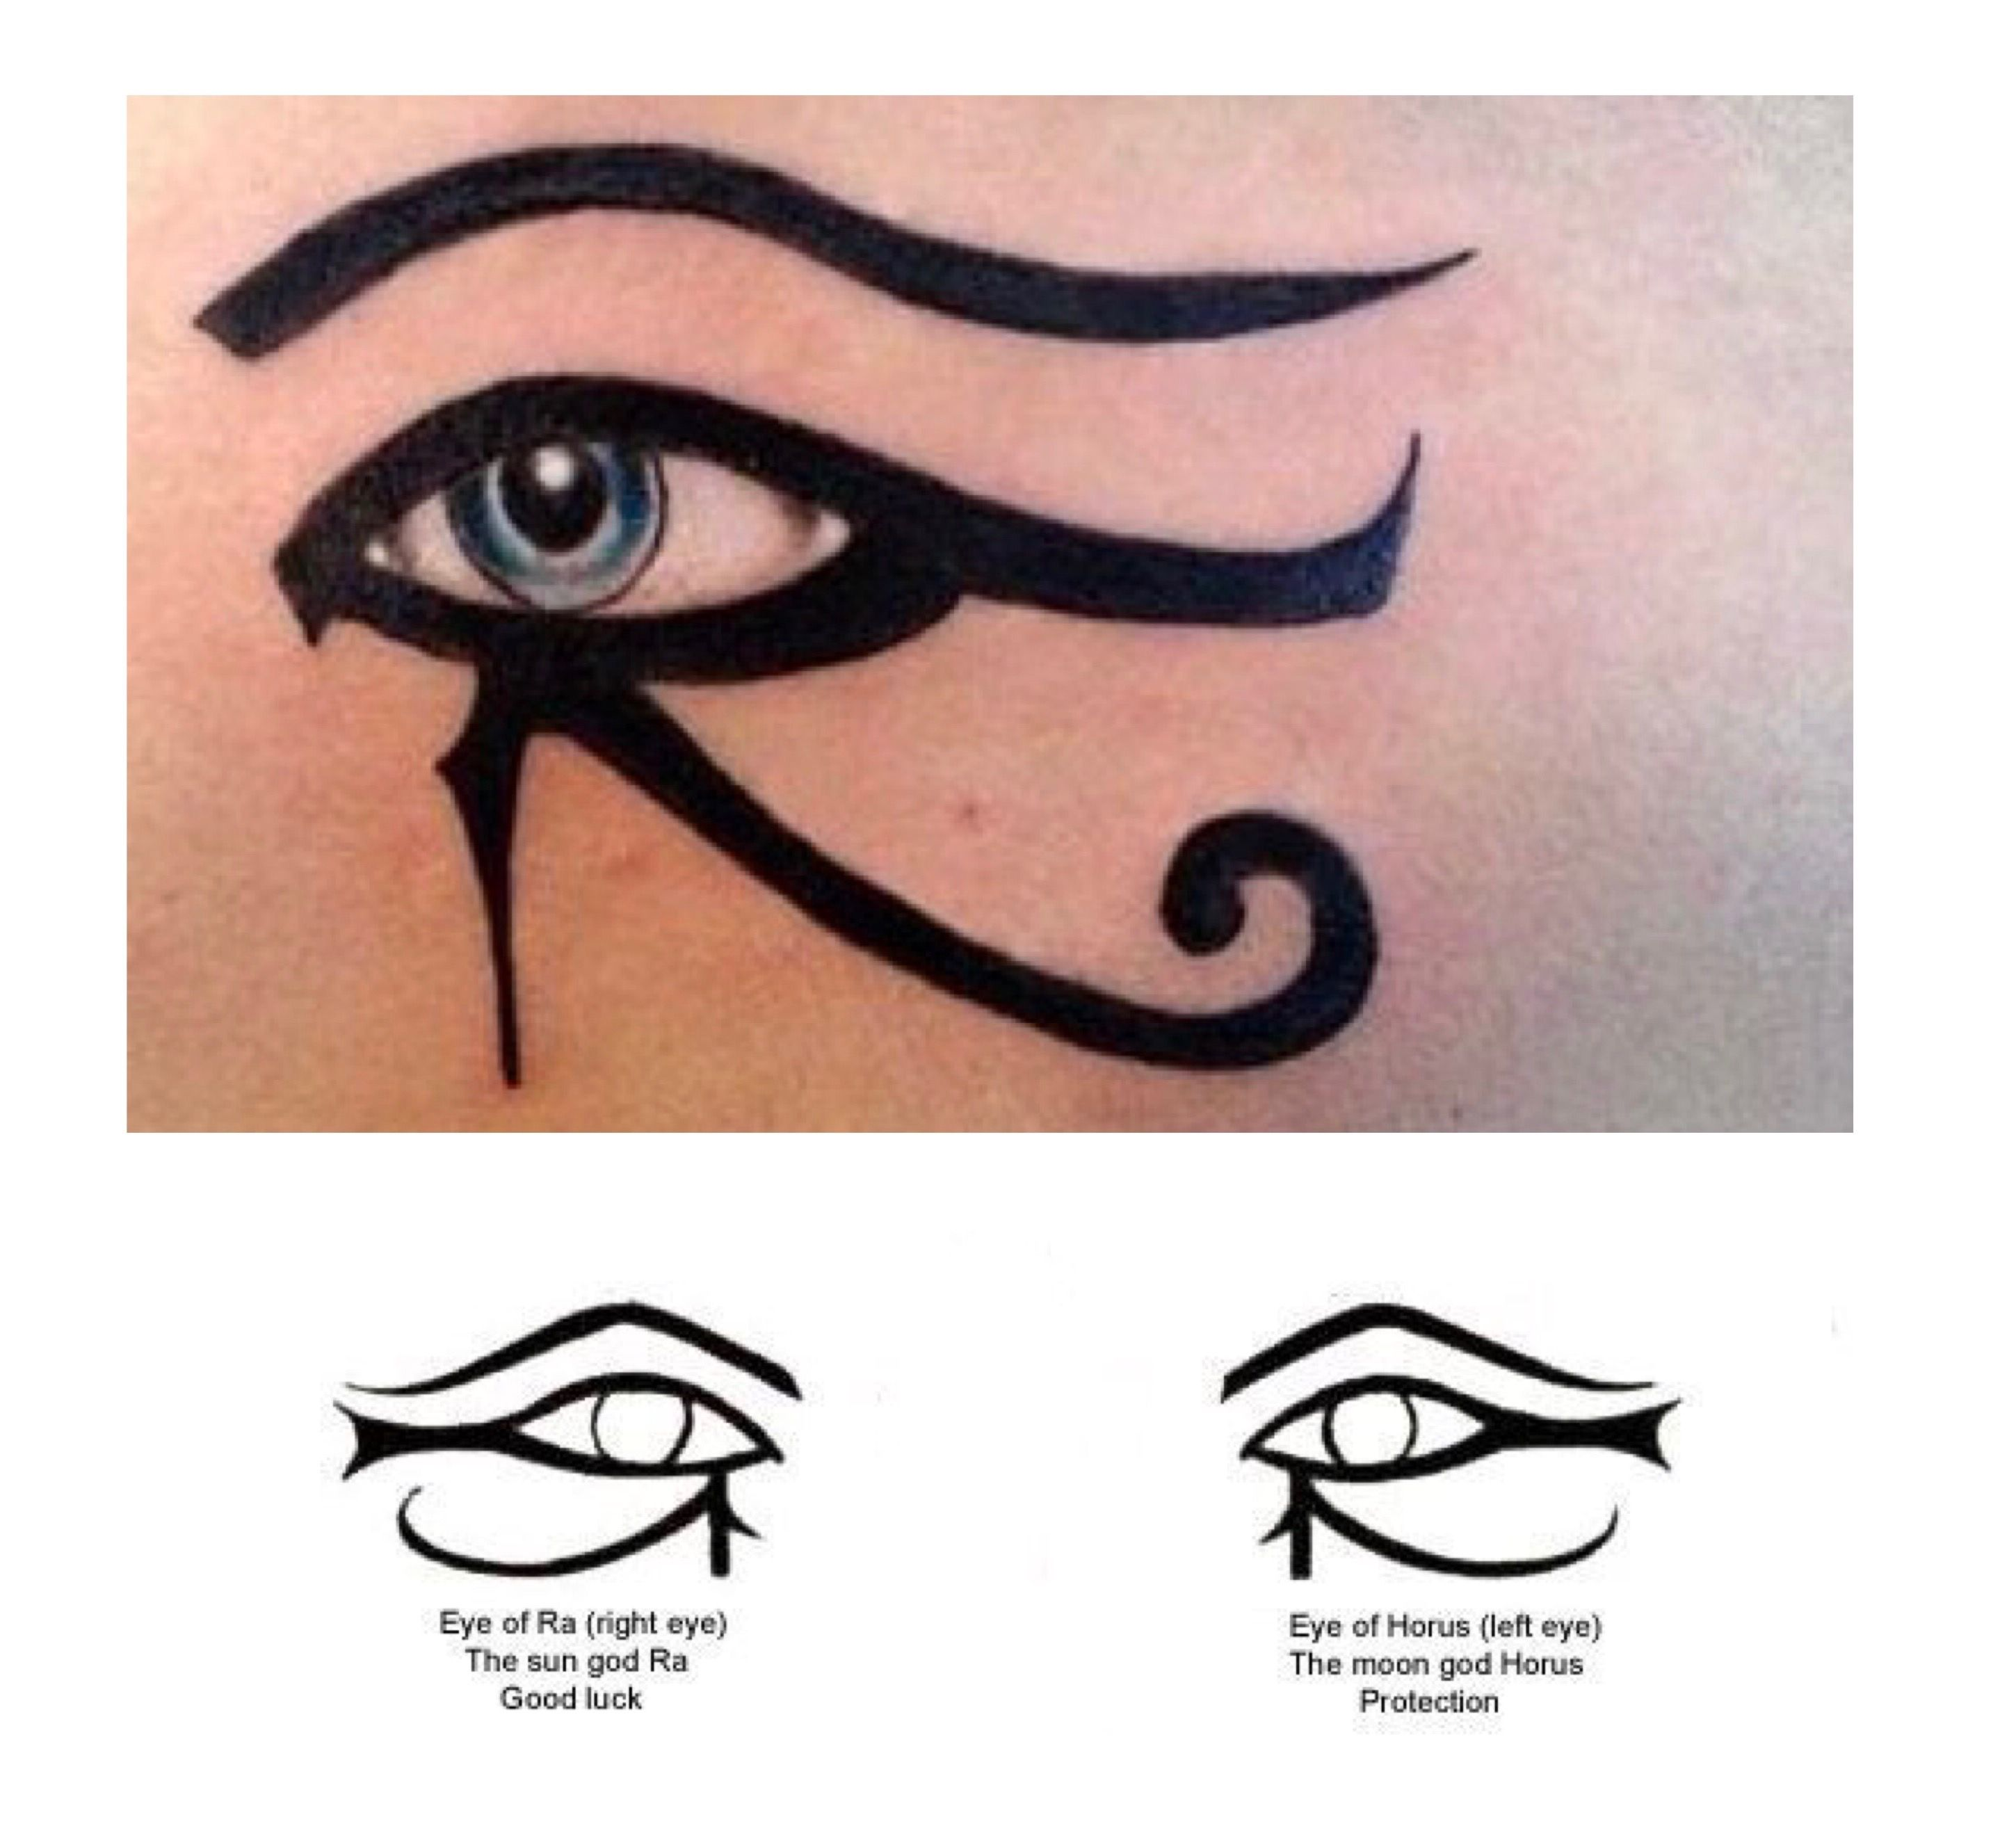 2 eye makeup visibly accented on Hathor... either/both